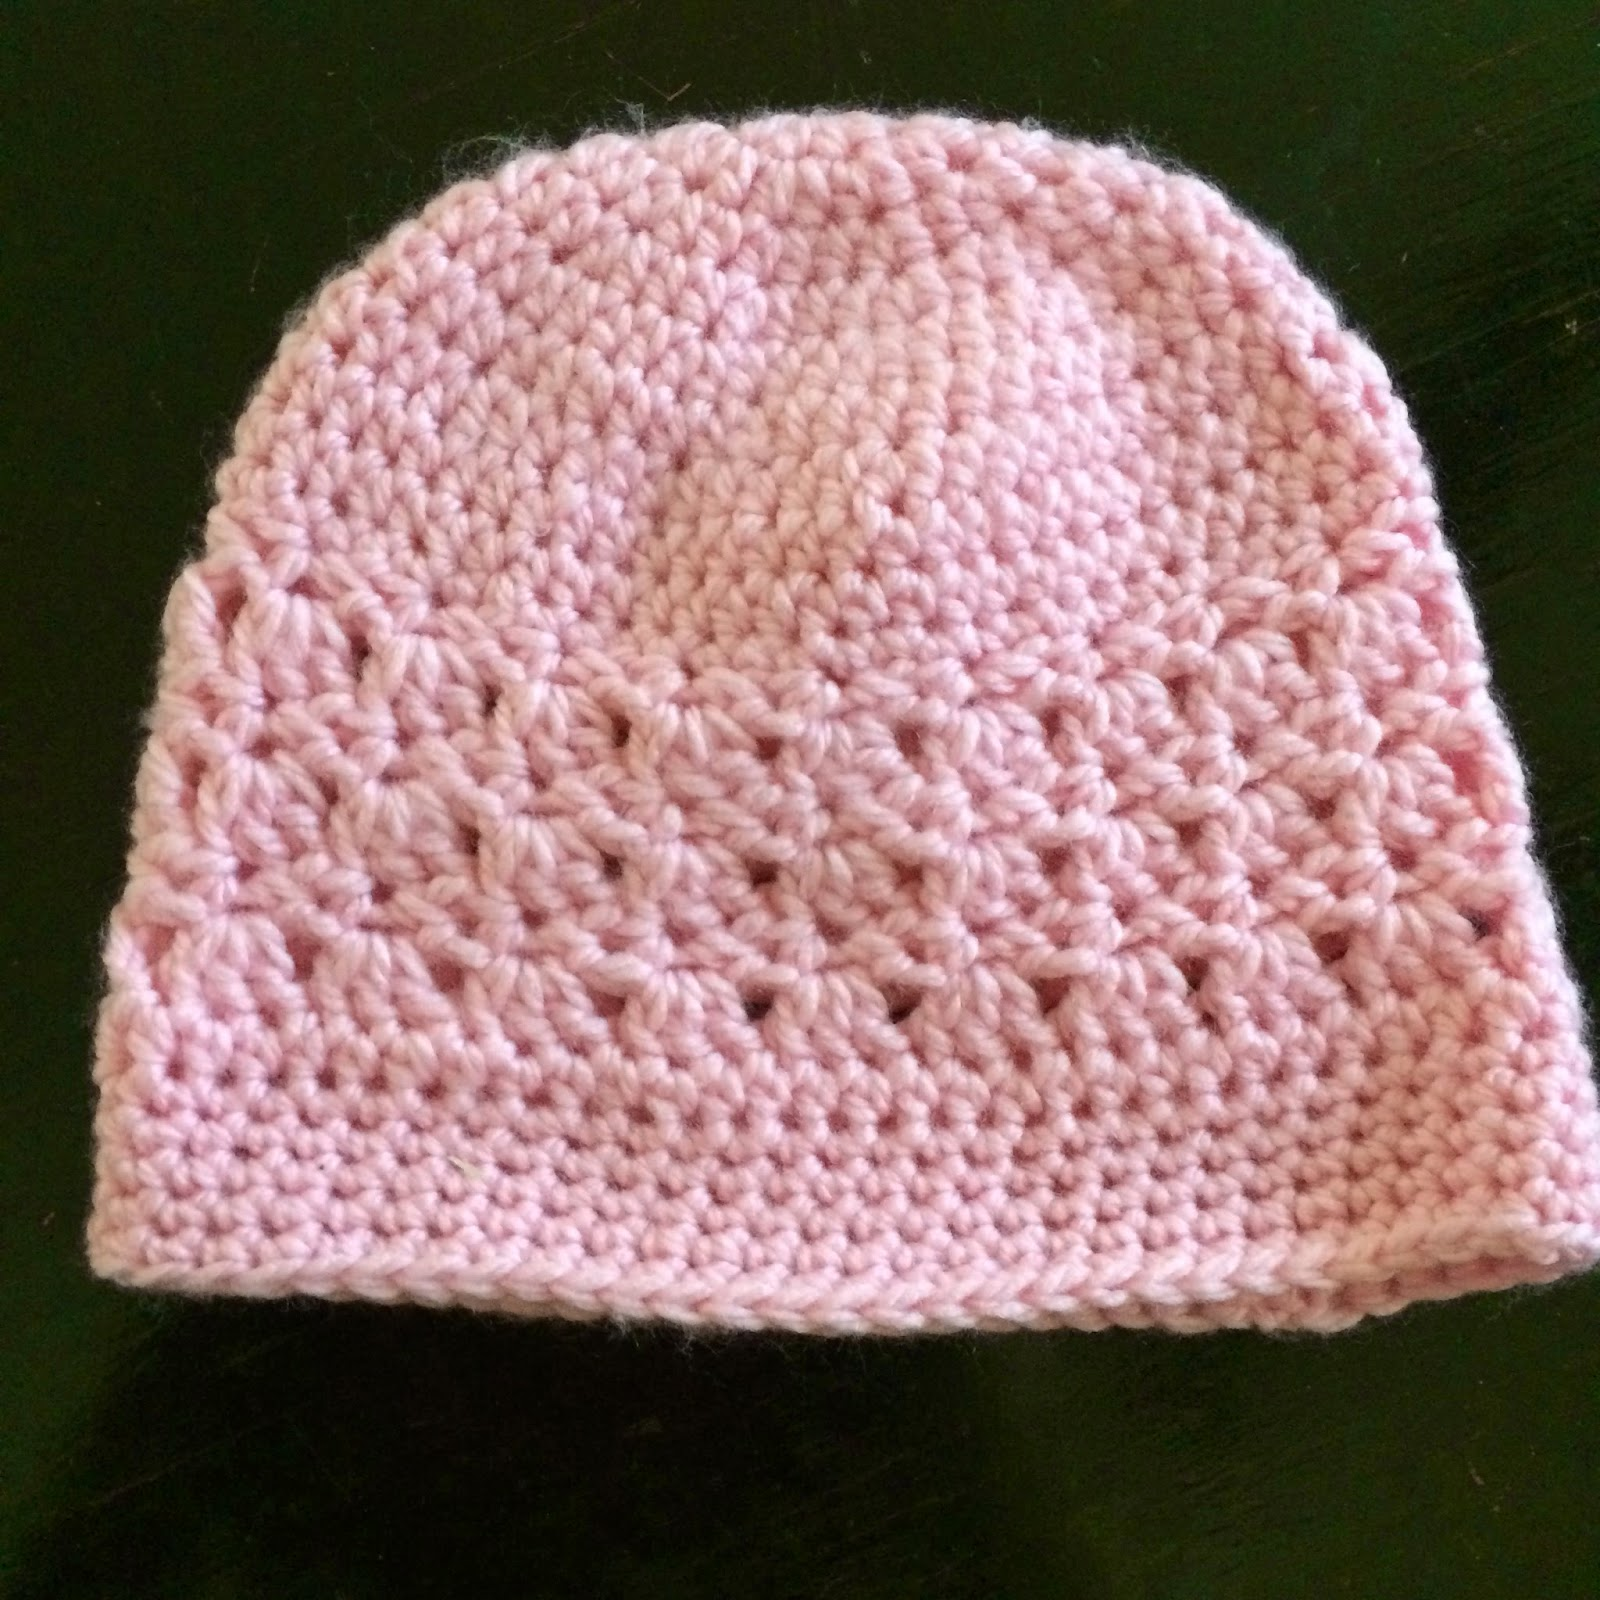 Crochet Chemo Cap Free Pattern Not My Nanas Crochet